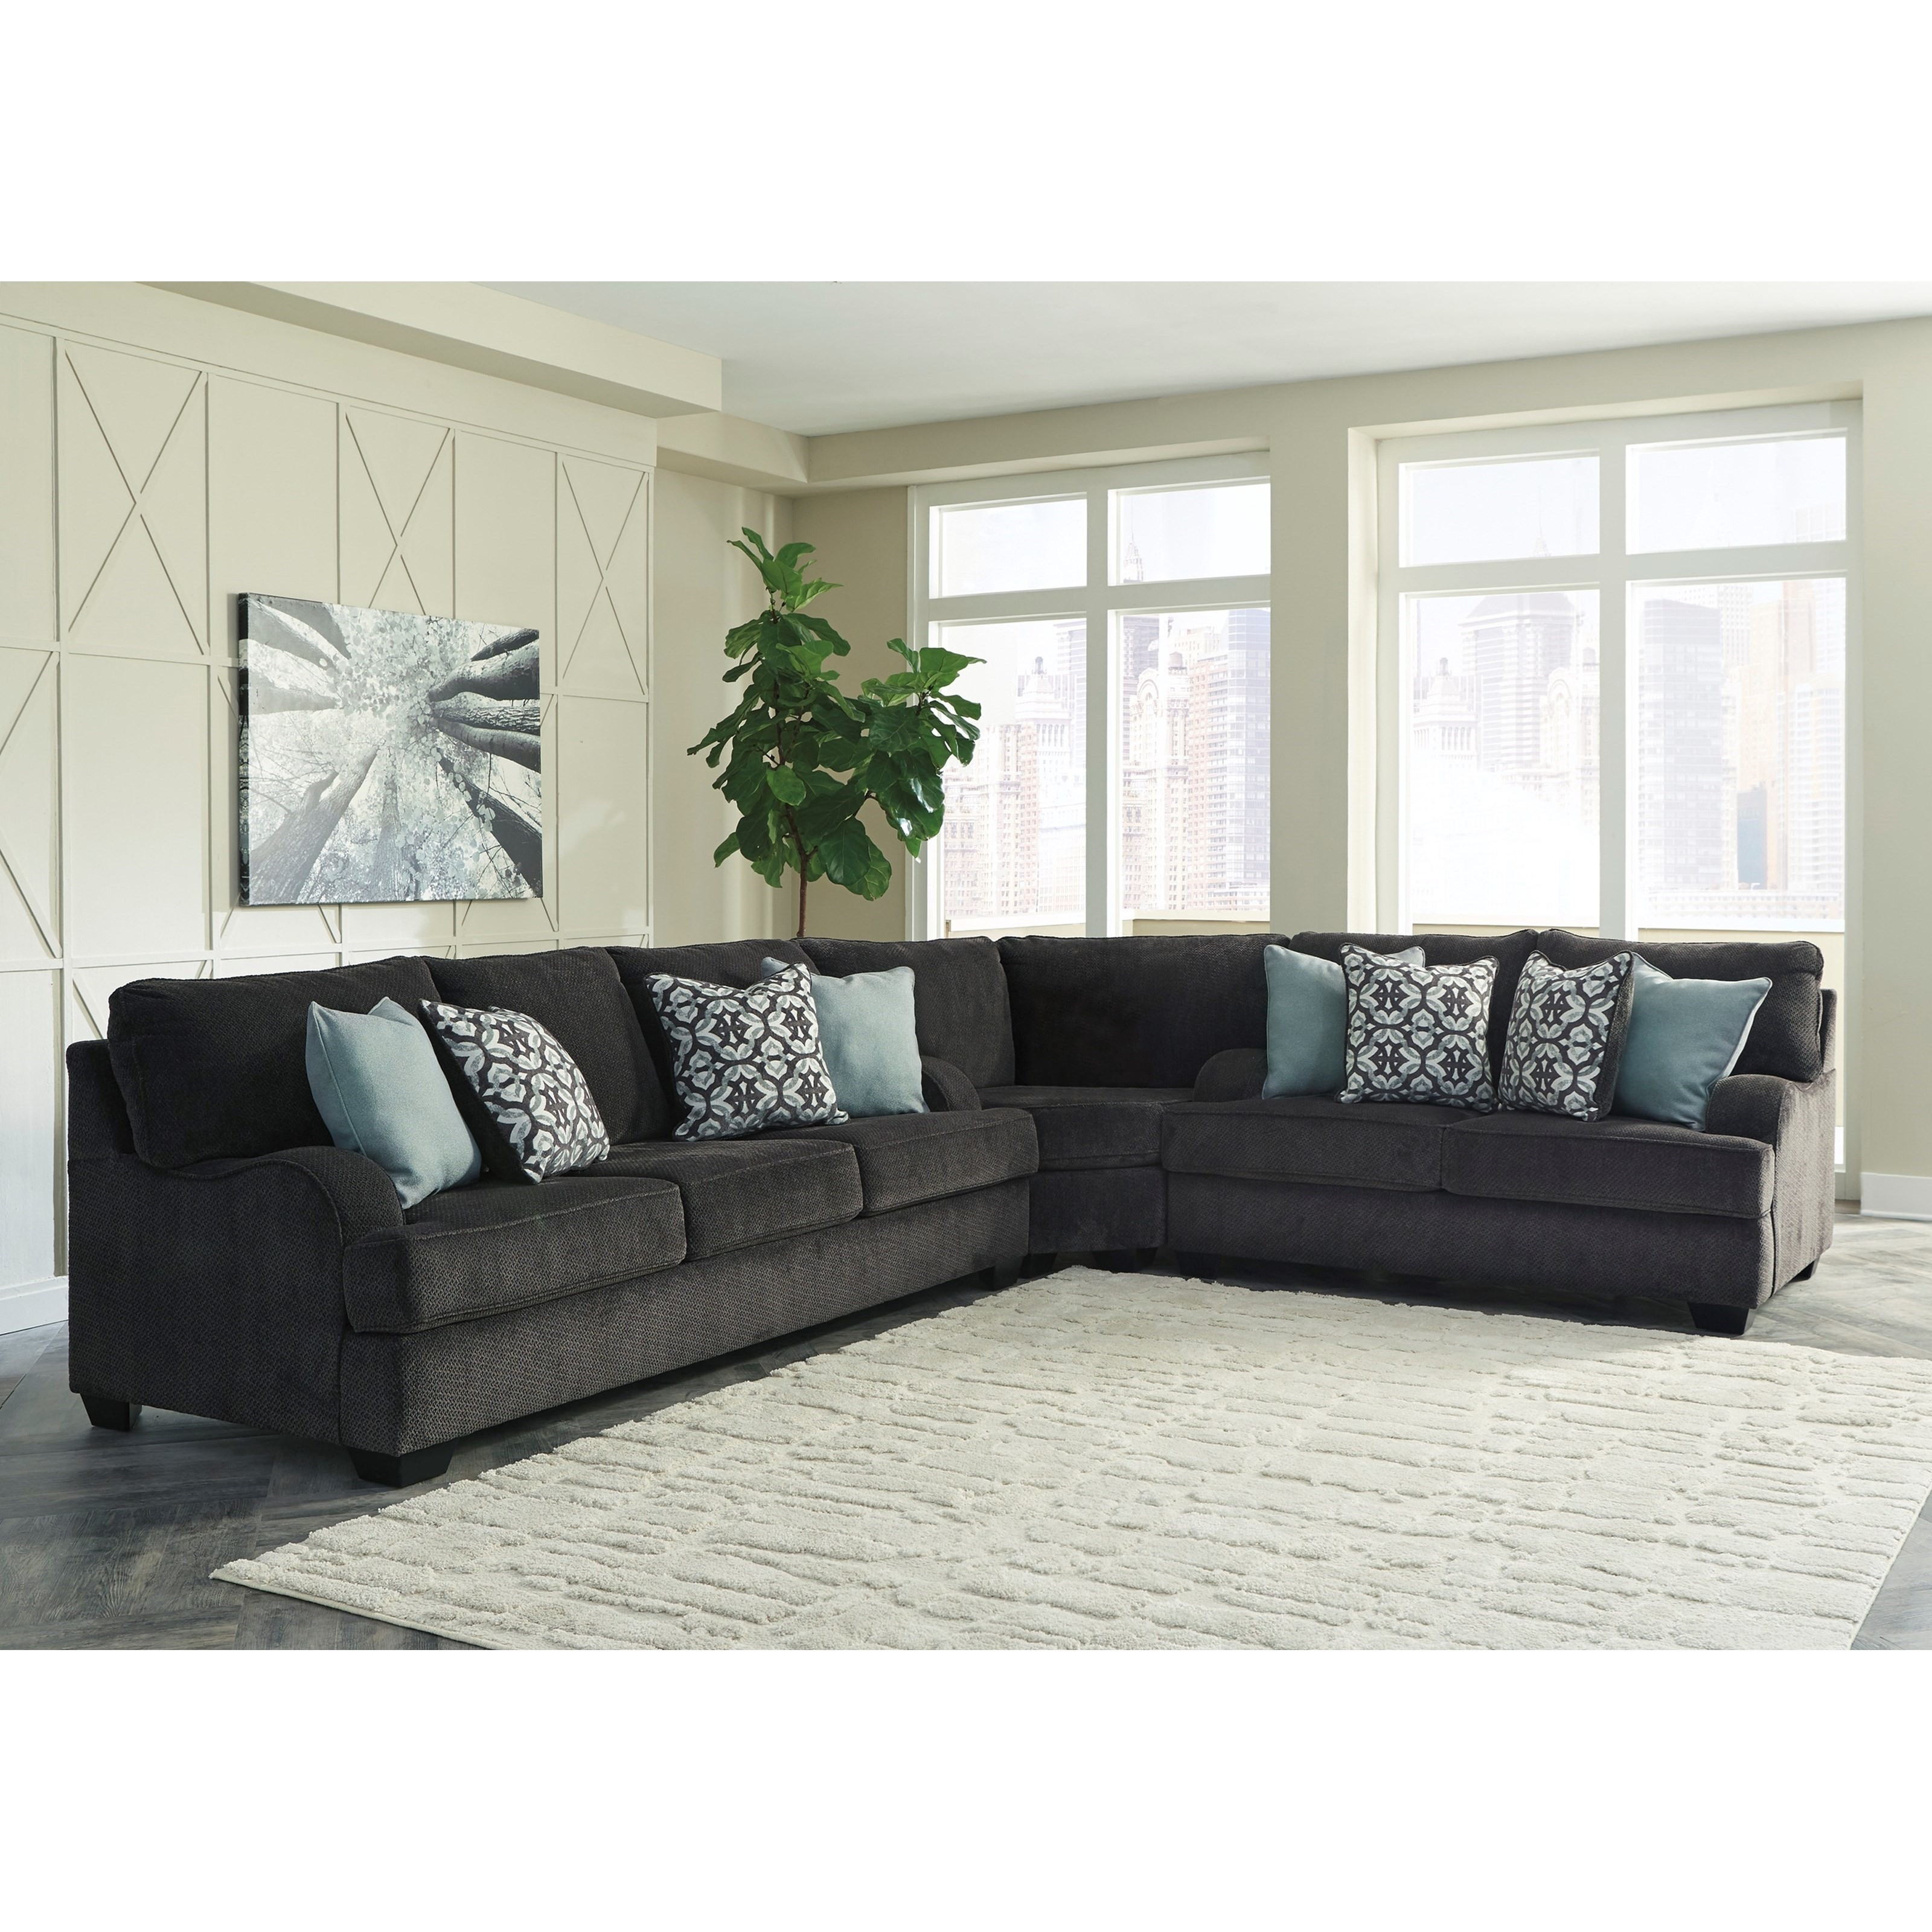 Luxury Splitting Up A Sectional Sofa Hiding Unfinished Side in Jackson Ms Sectional Sofas (Image 7 of 10)